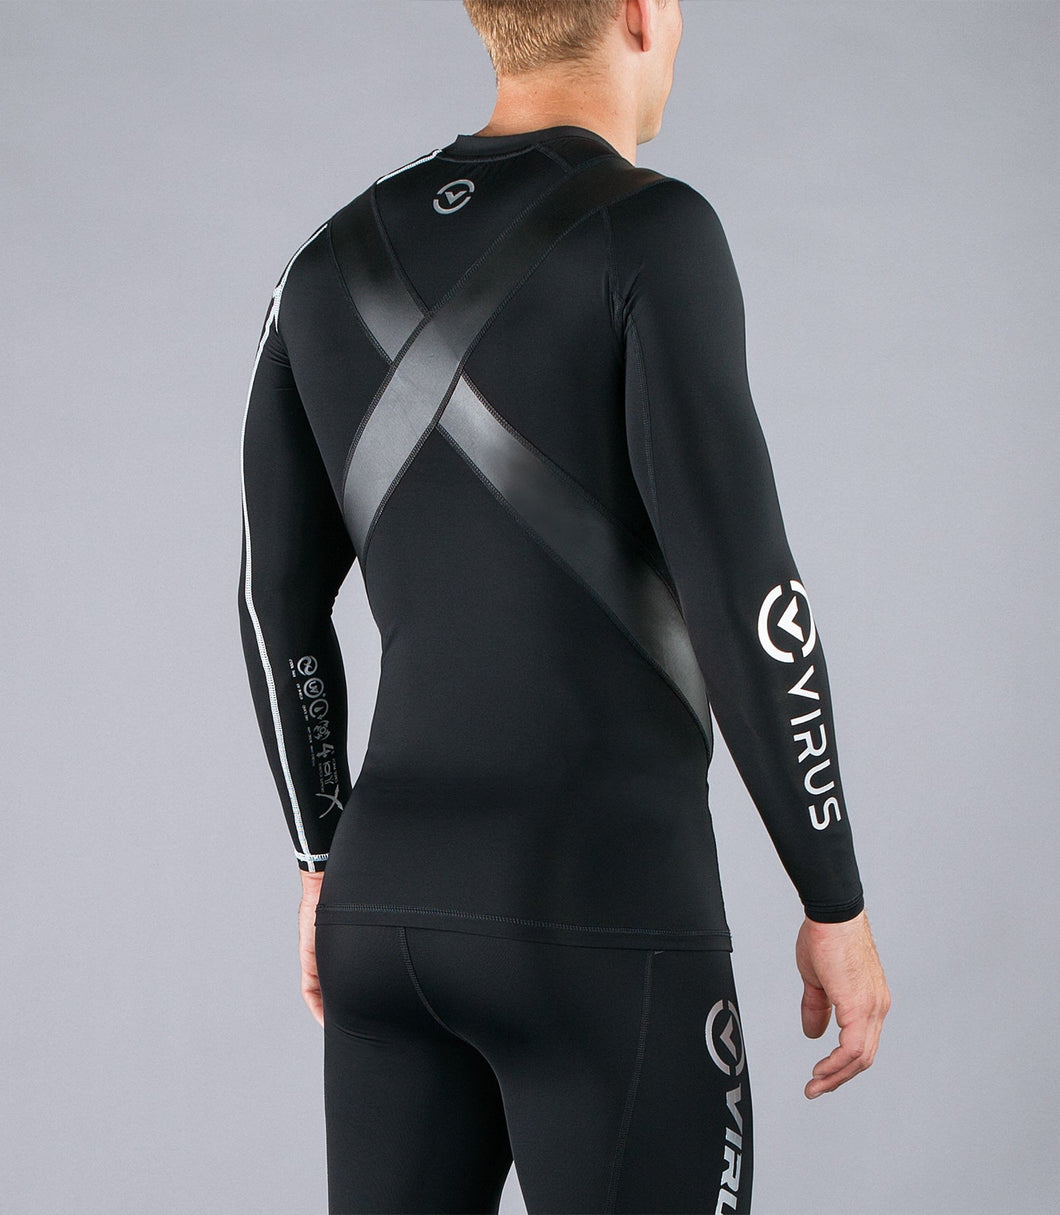 Co12X | CoolJade™ Long Sleeve X-Form Compression Top